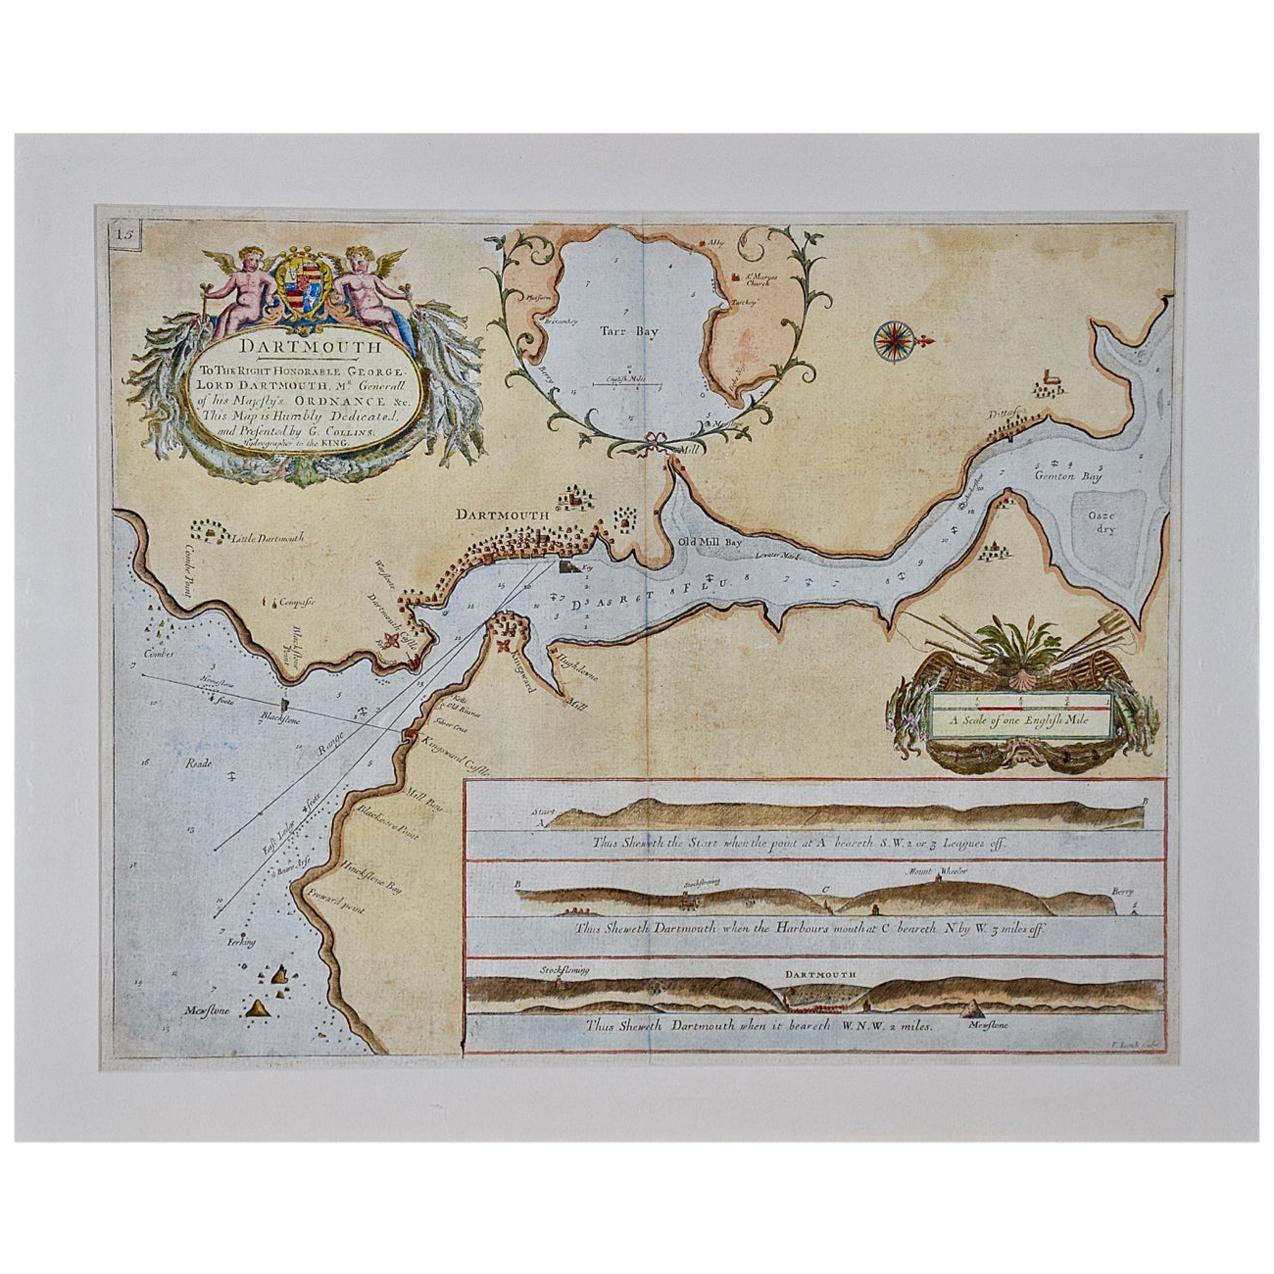 Hand-Colored 17th Century Sea Chart of Dartmouth, England by Captain Collins